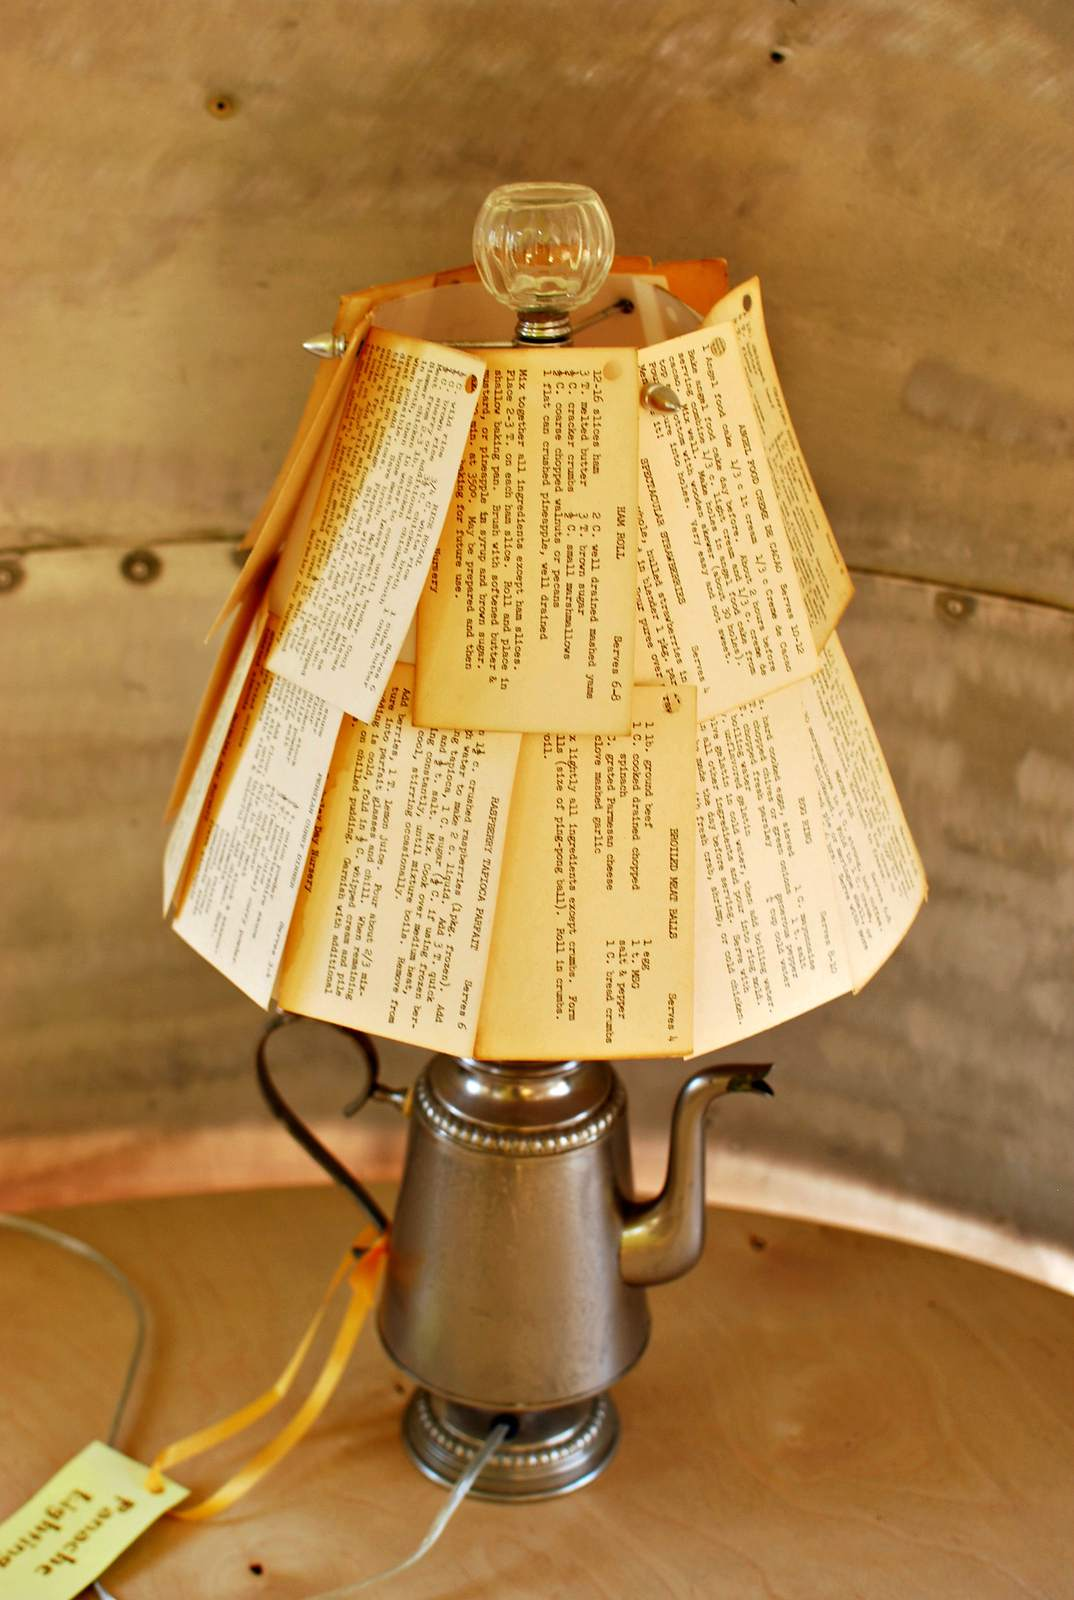 Lamp upcycled from coffeepot and shade made from recipe cards.